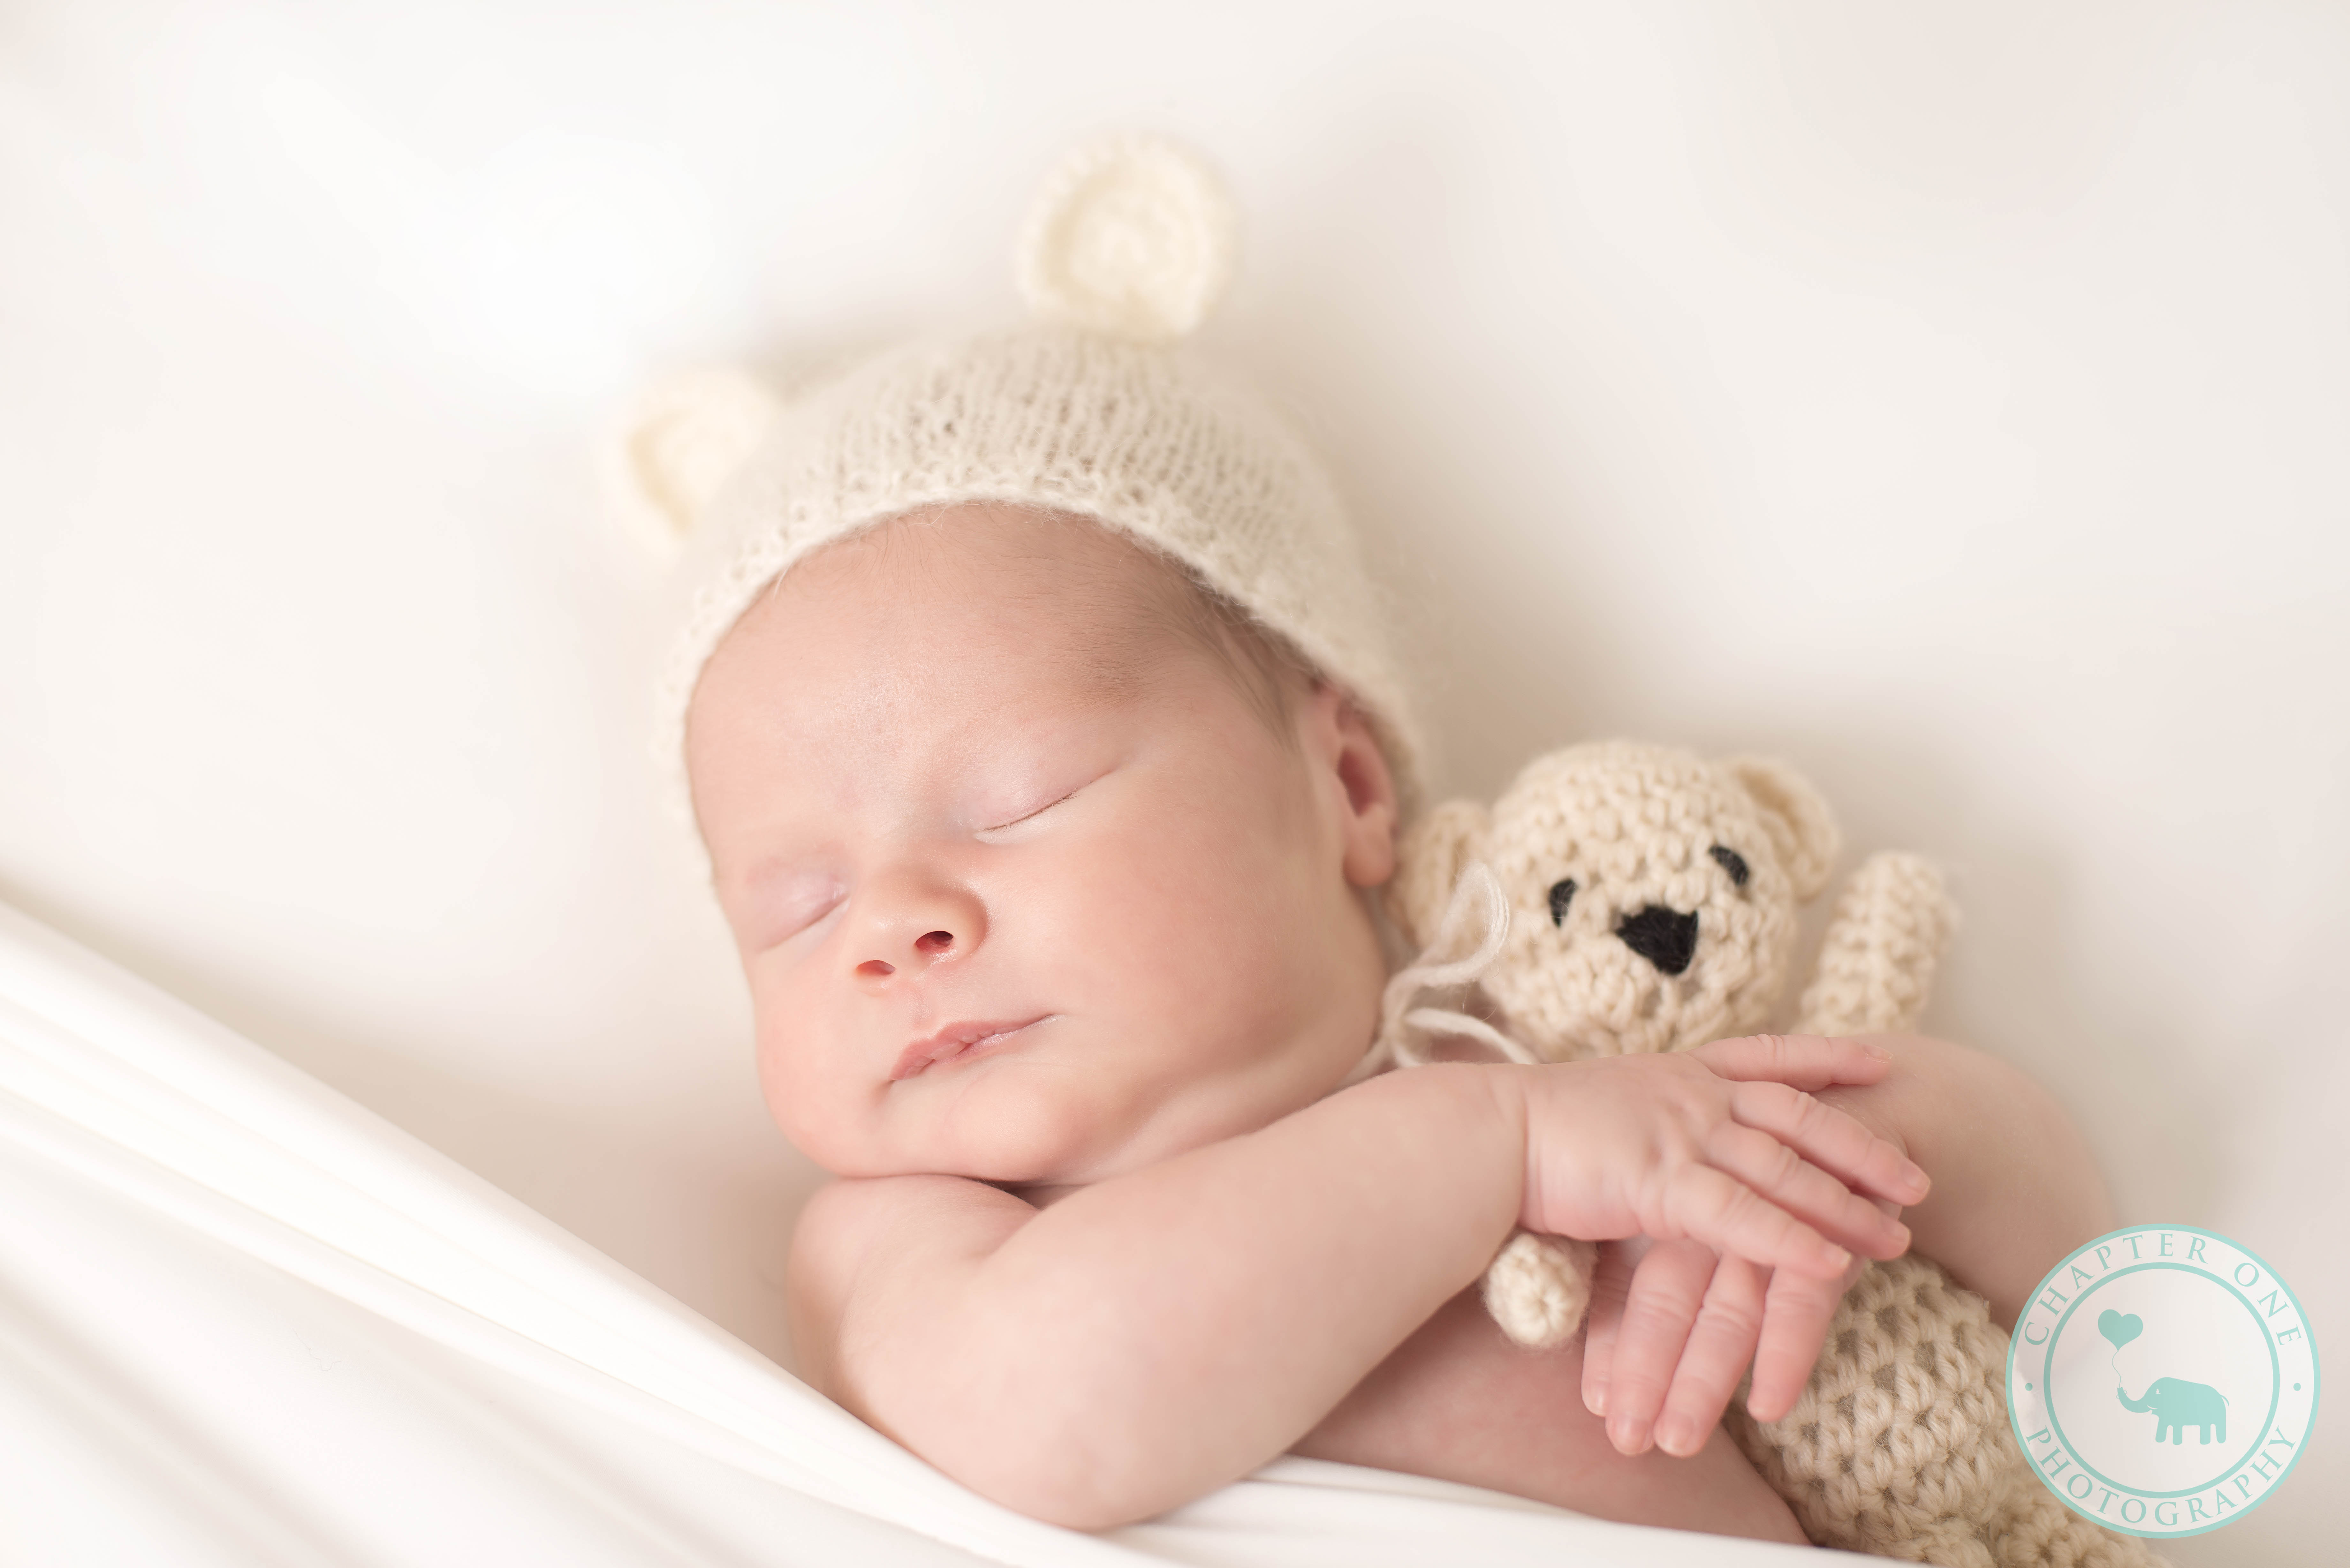 Baby Boy Newborn with teddy